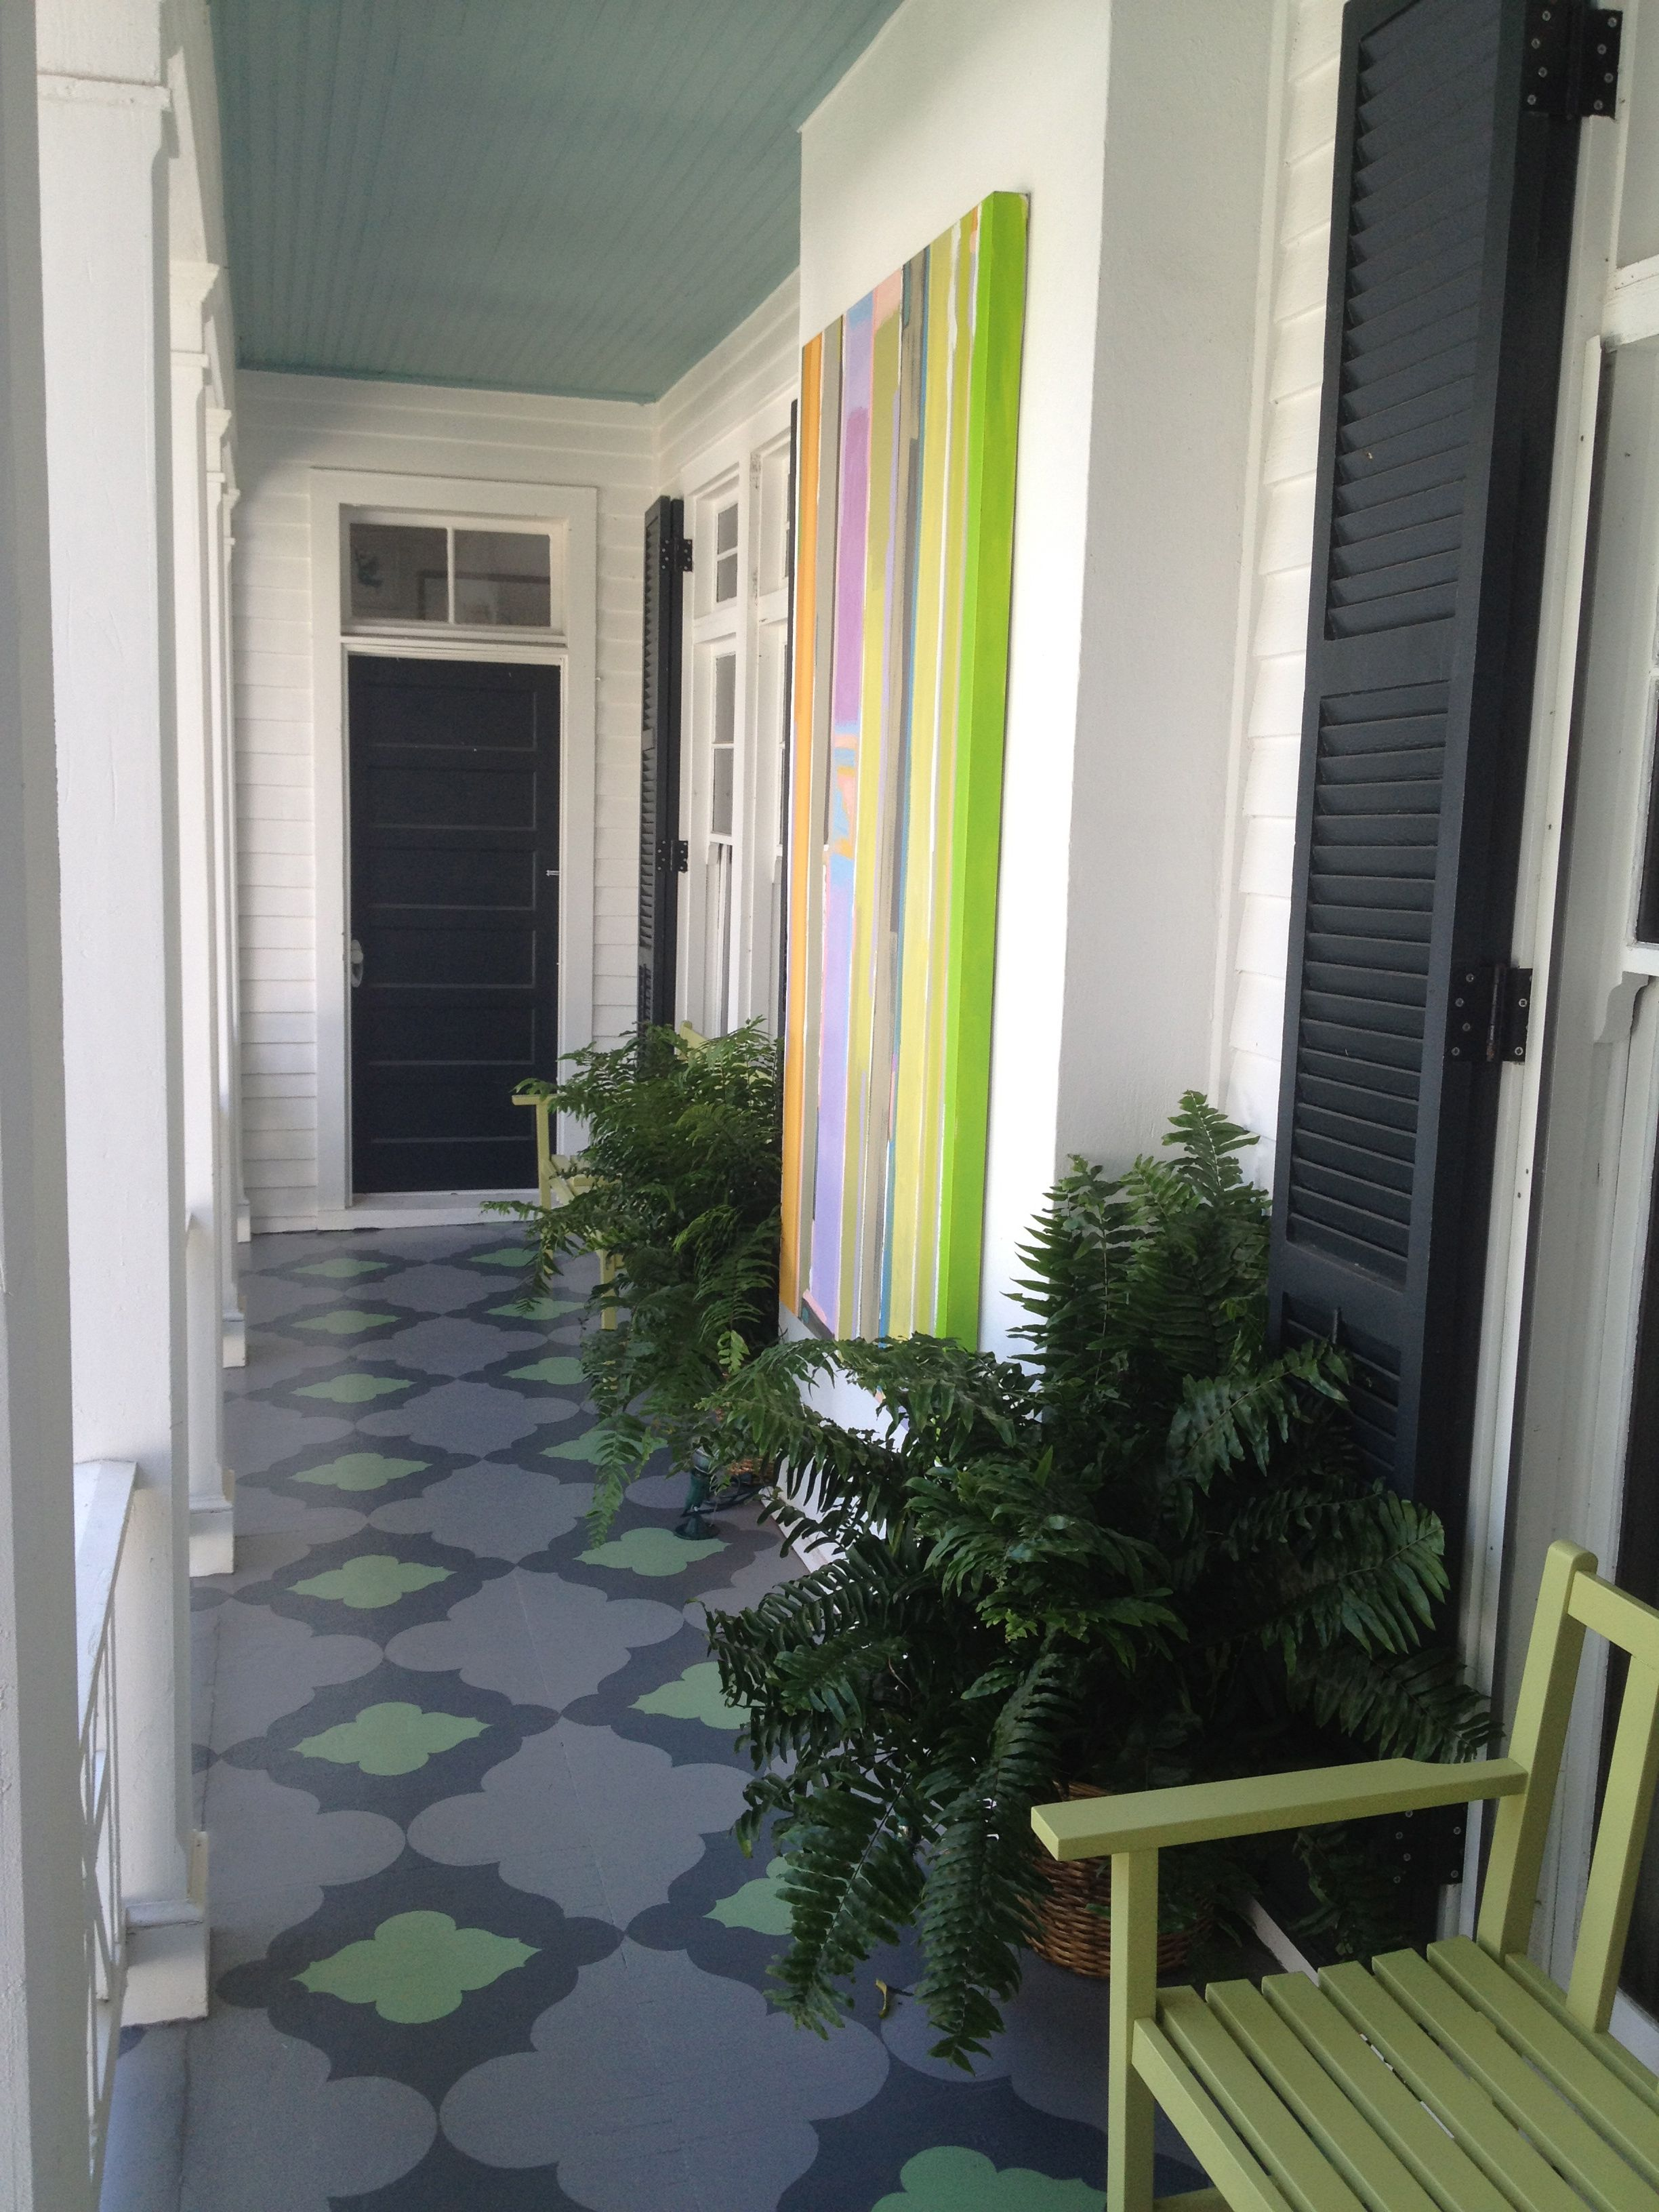 Home decor trend we love painted floors porch flooring porch gorgeous painted porch floor love the art on the wall too dailygadgetfo Images